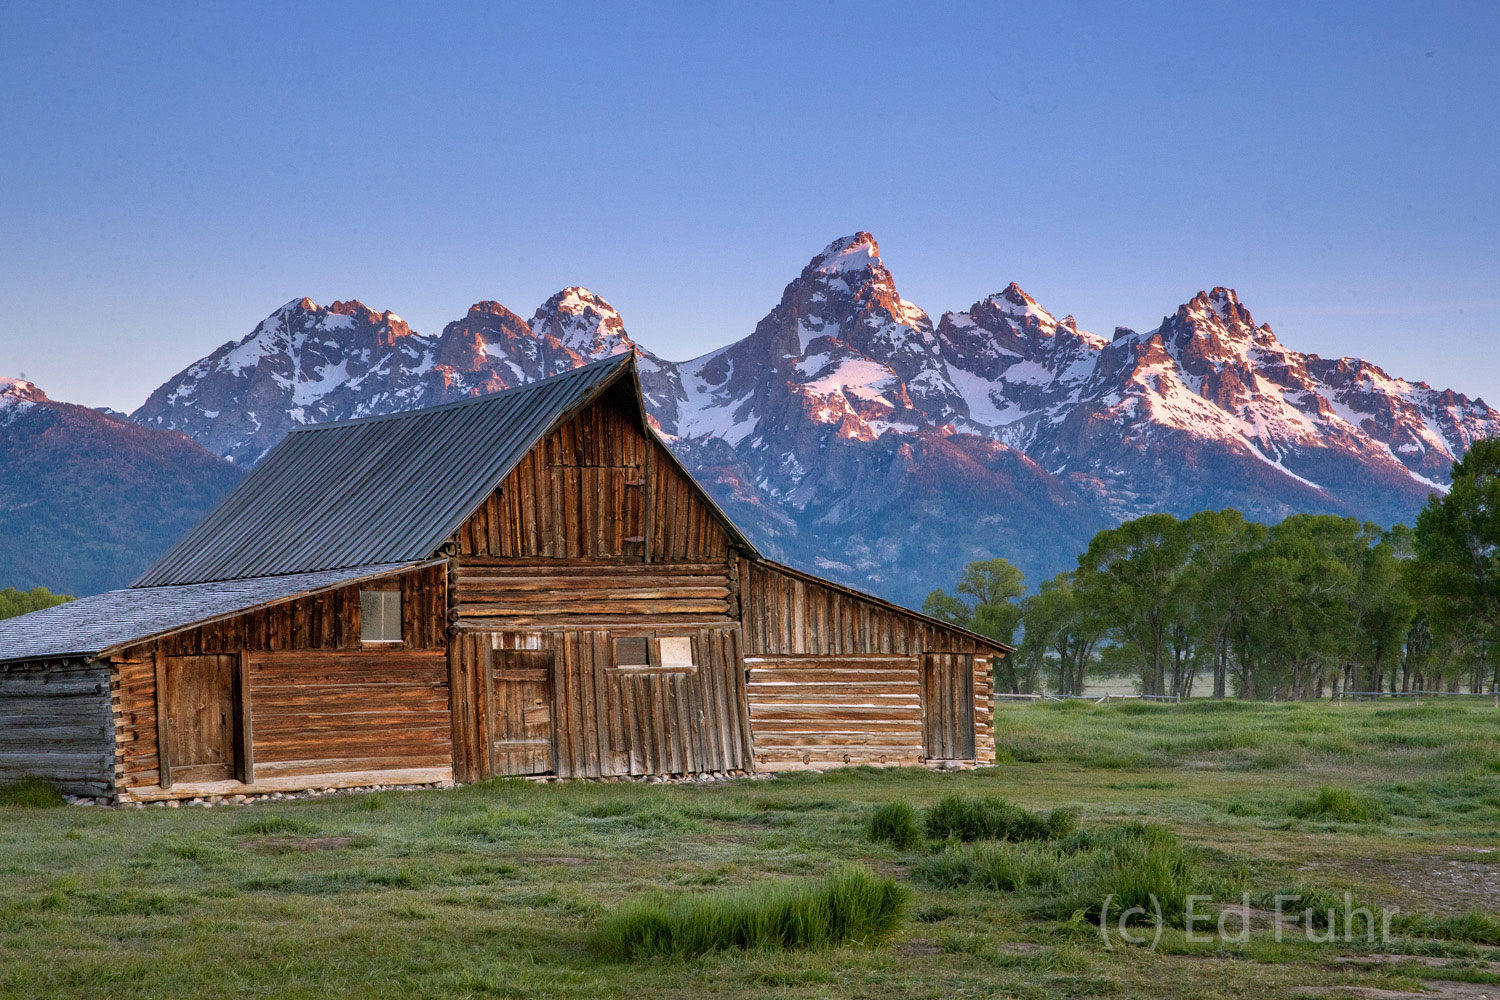 The early sun begins to paint the Teton range while the T.A. Moulton barn still stands in shadow.